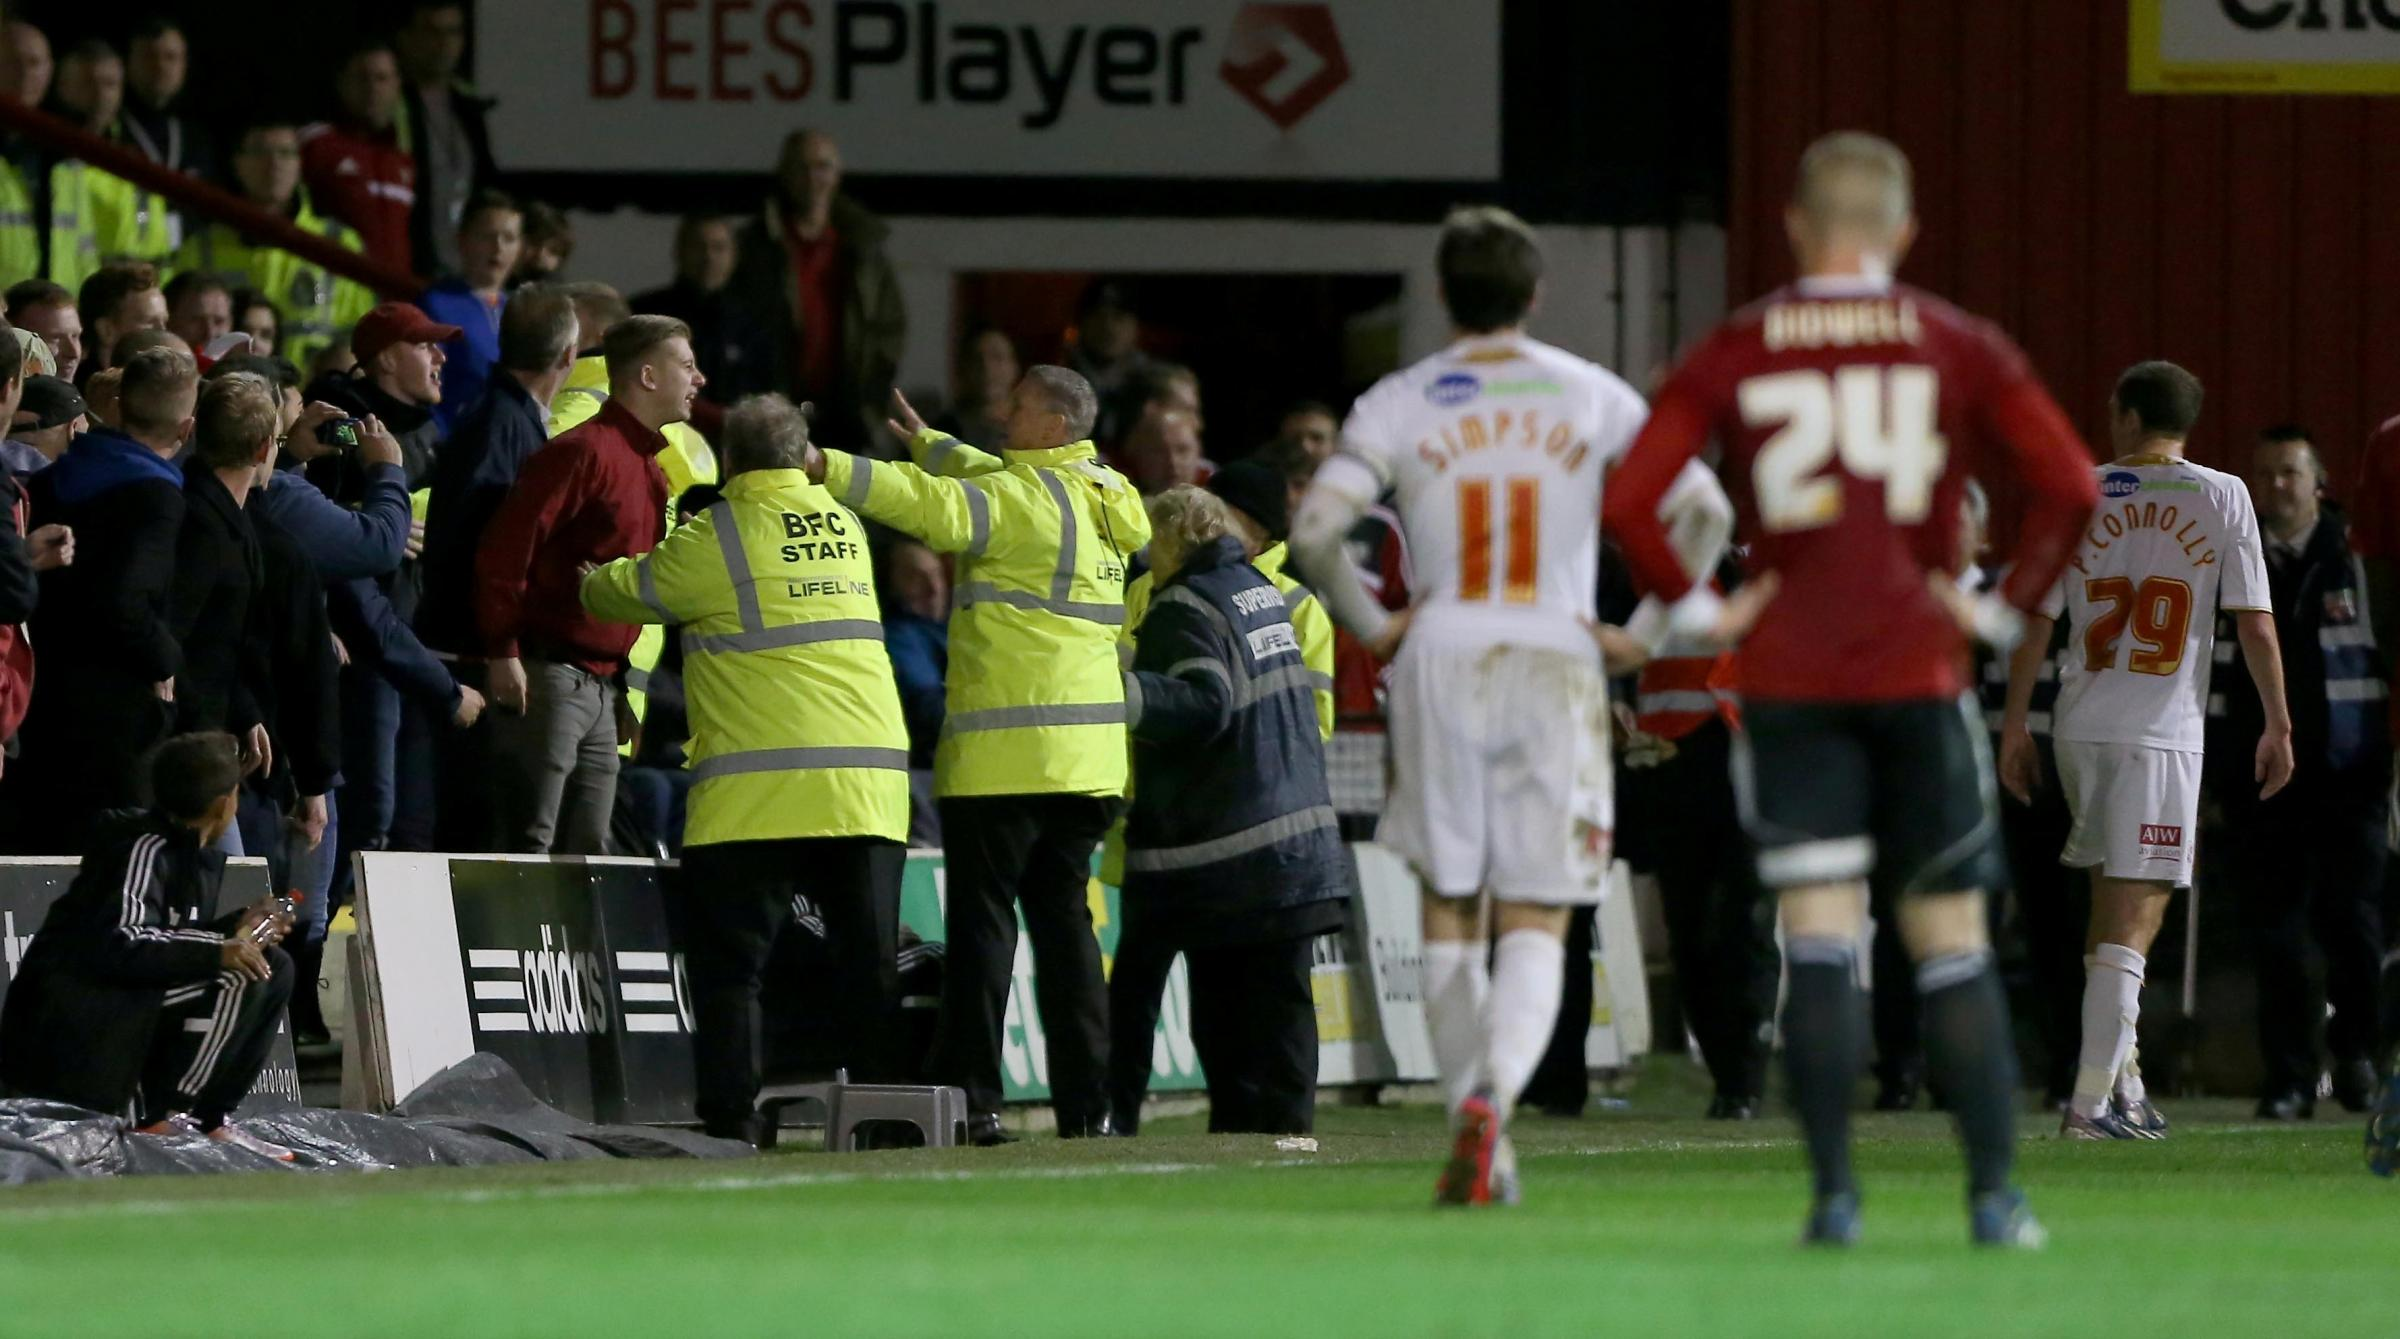 Fans react to the Paul Connolly incident at Griffin Park last night